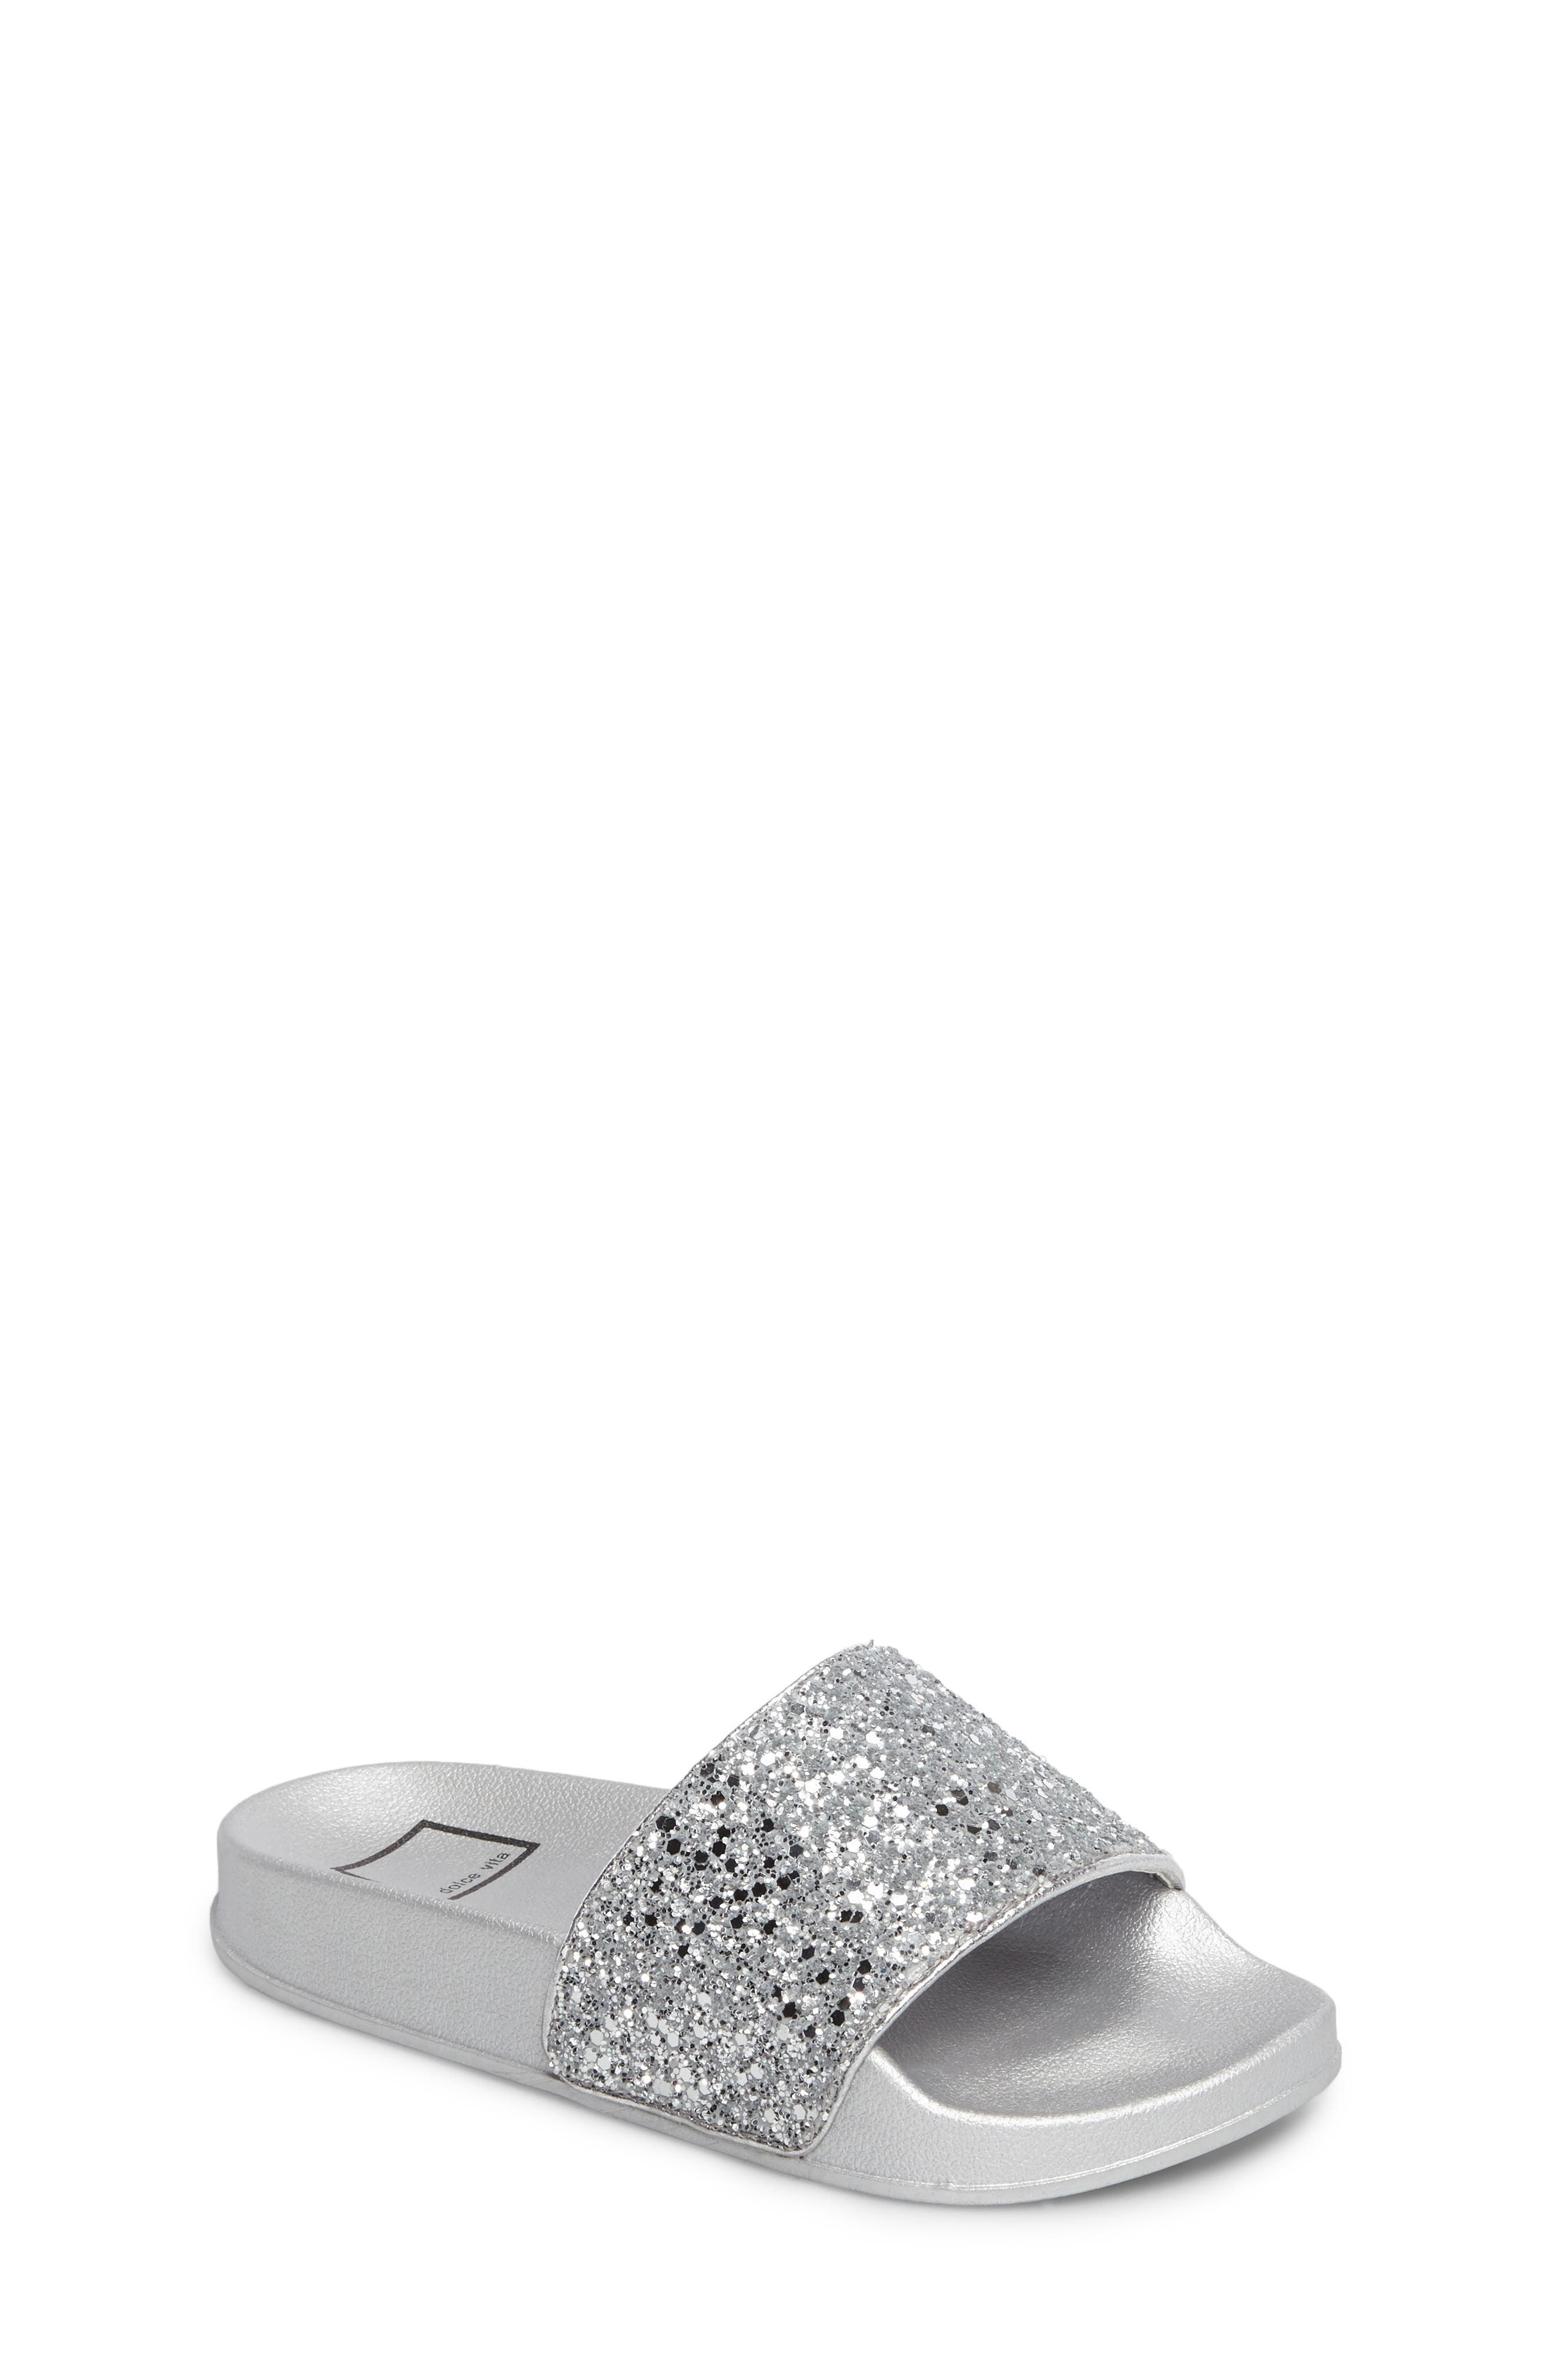 Shorty Glittery Pool Slide,                         Main,                         color, Silver